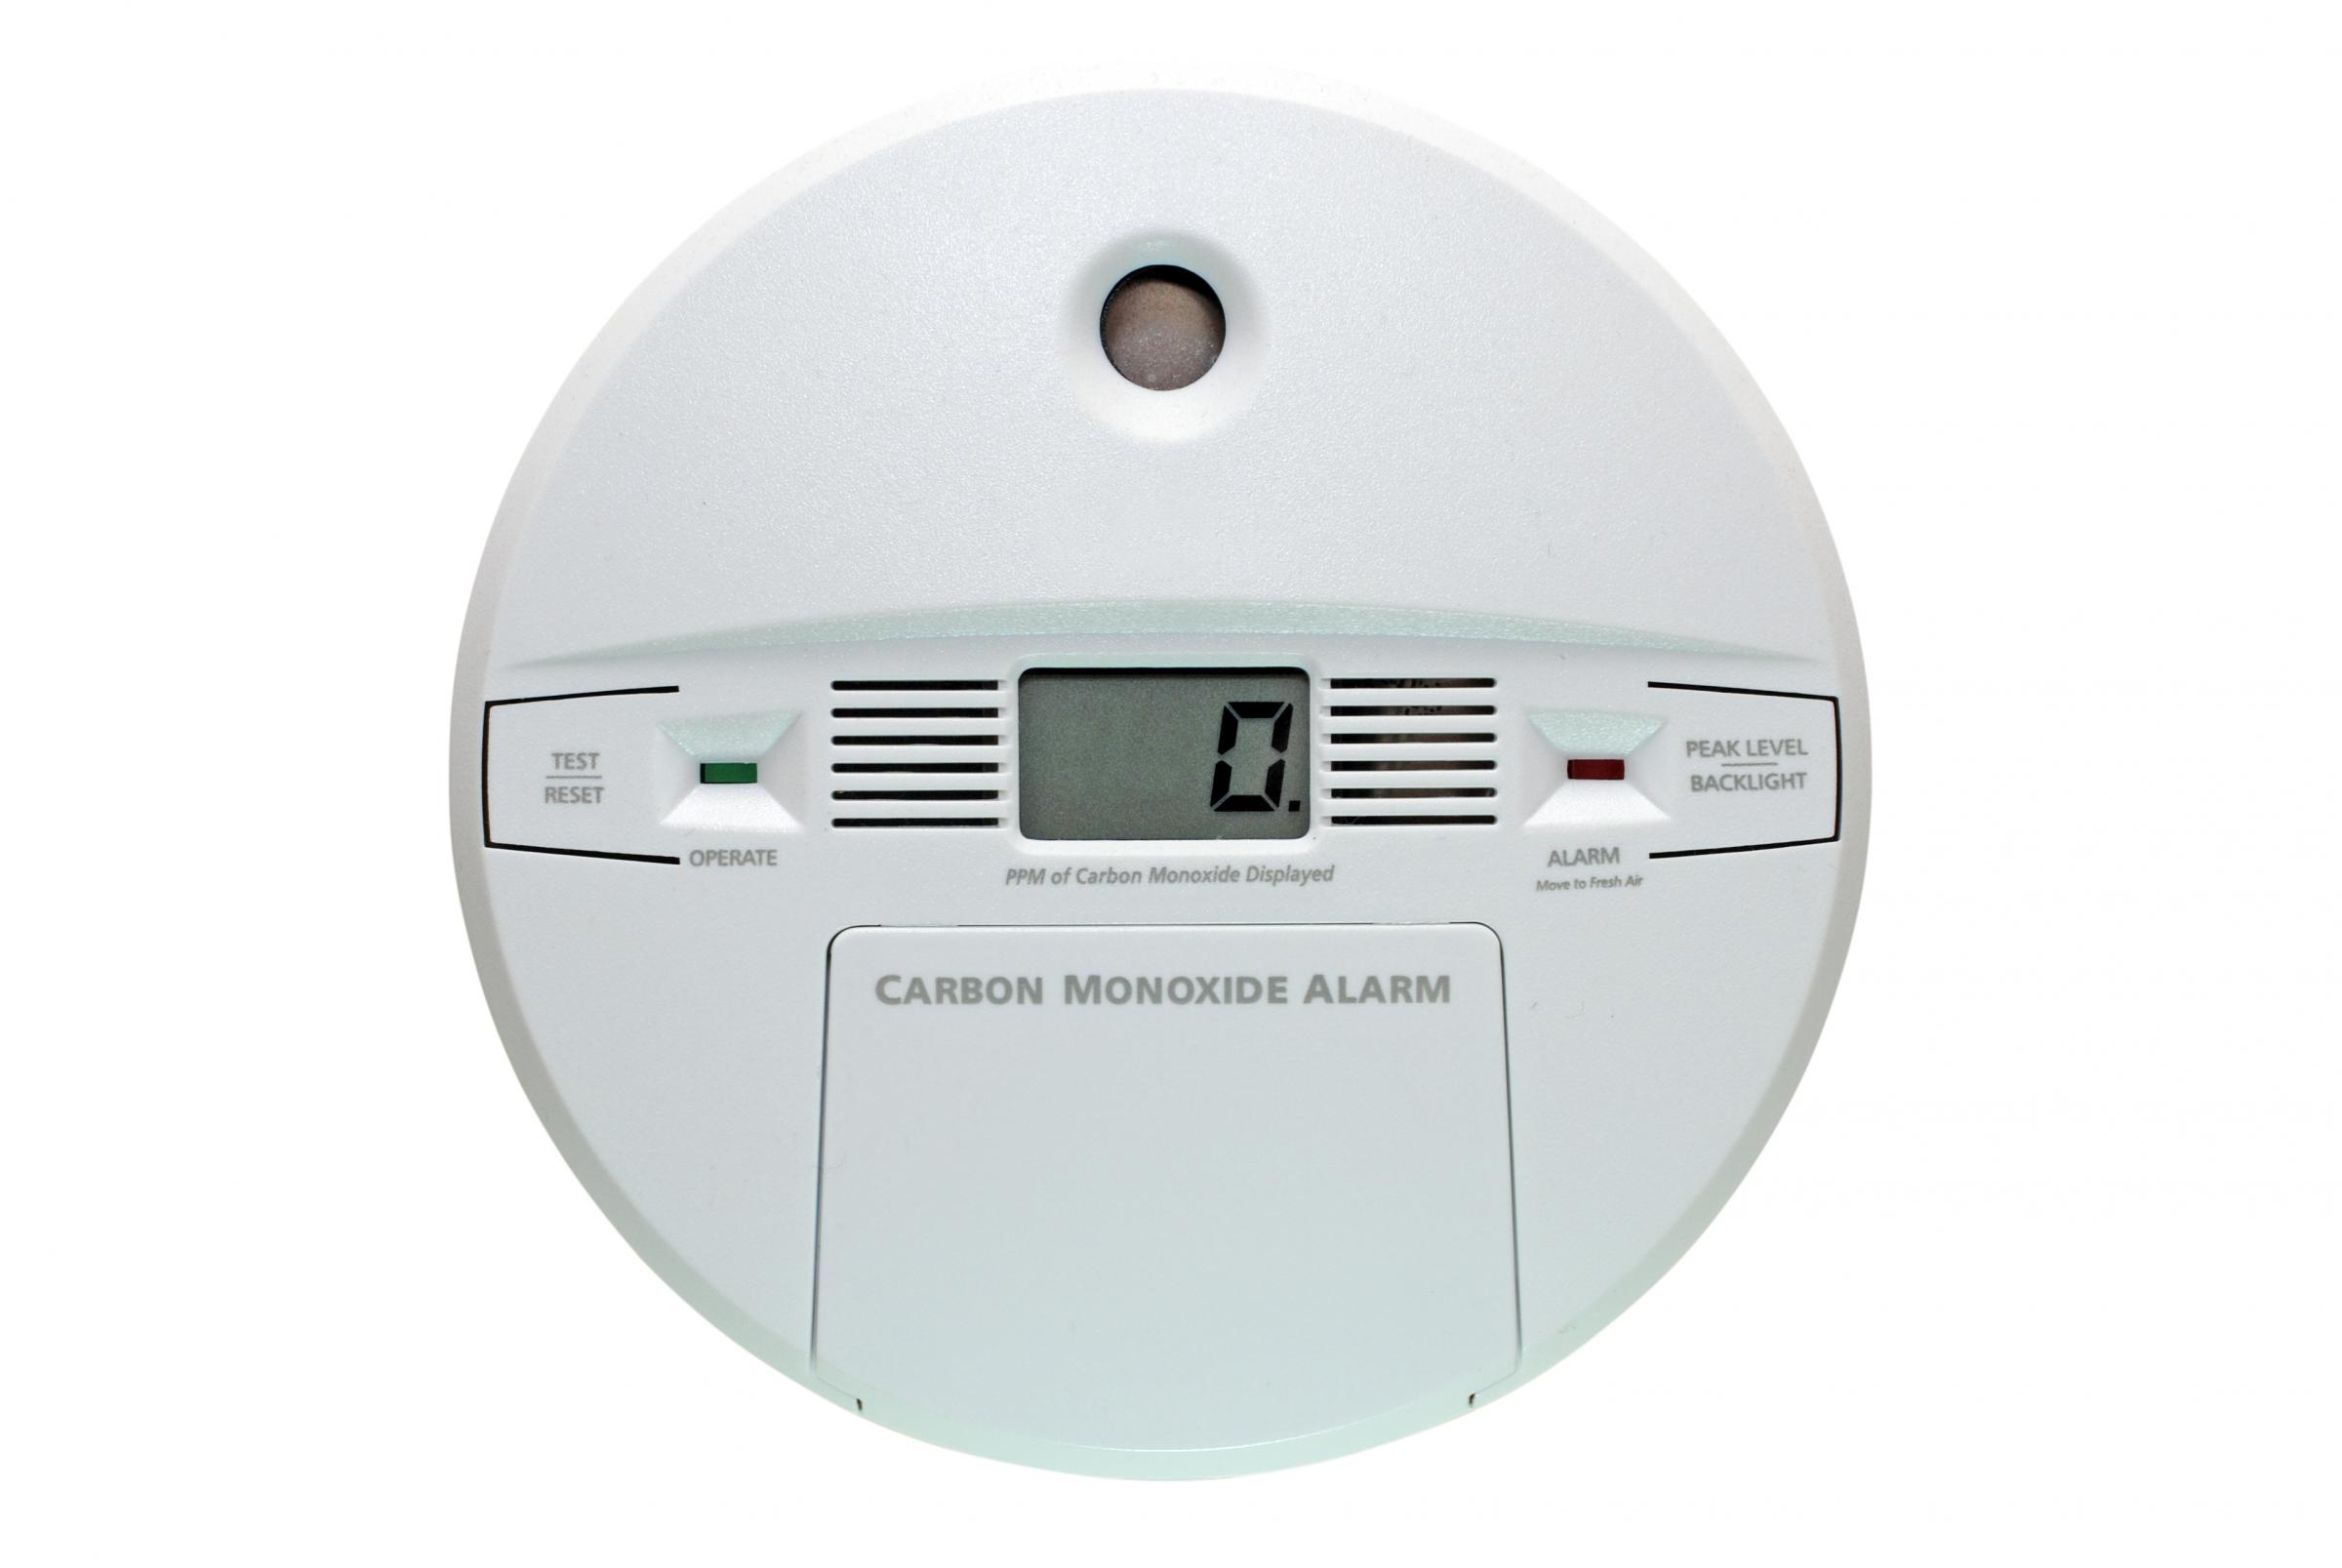 Carbon monoxide poisoning can happen from a badlly maintained gas boiler, hob or fire or from open fires, log burners and barbecues.